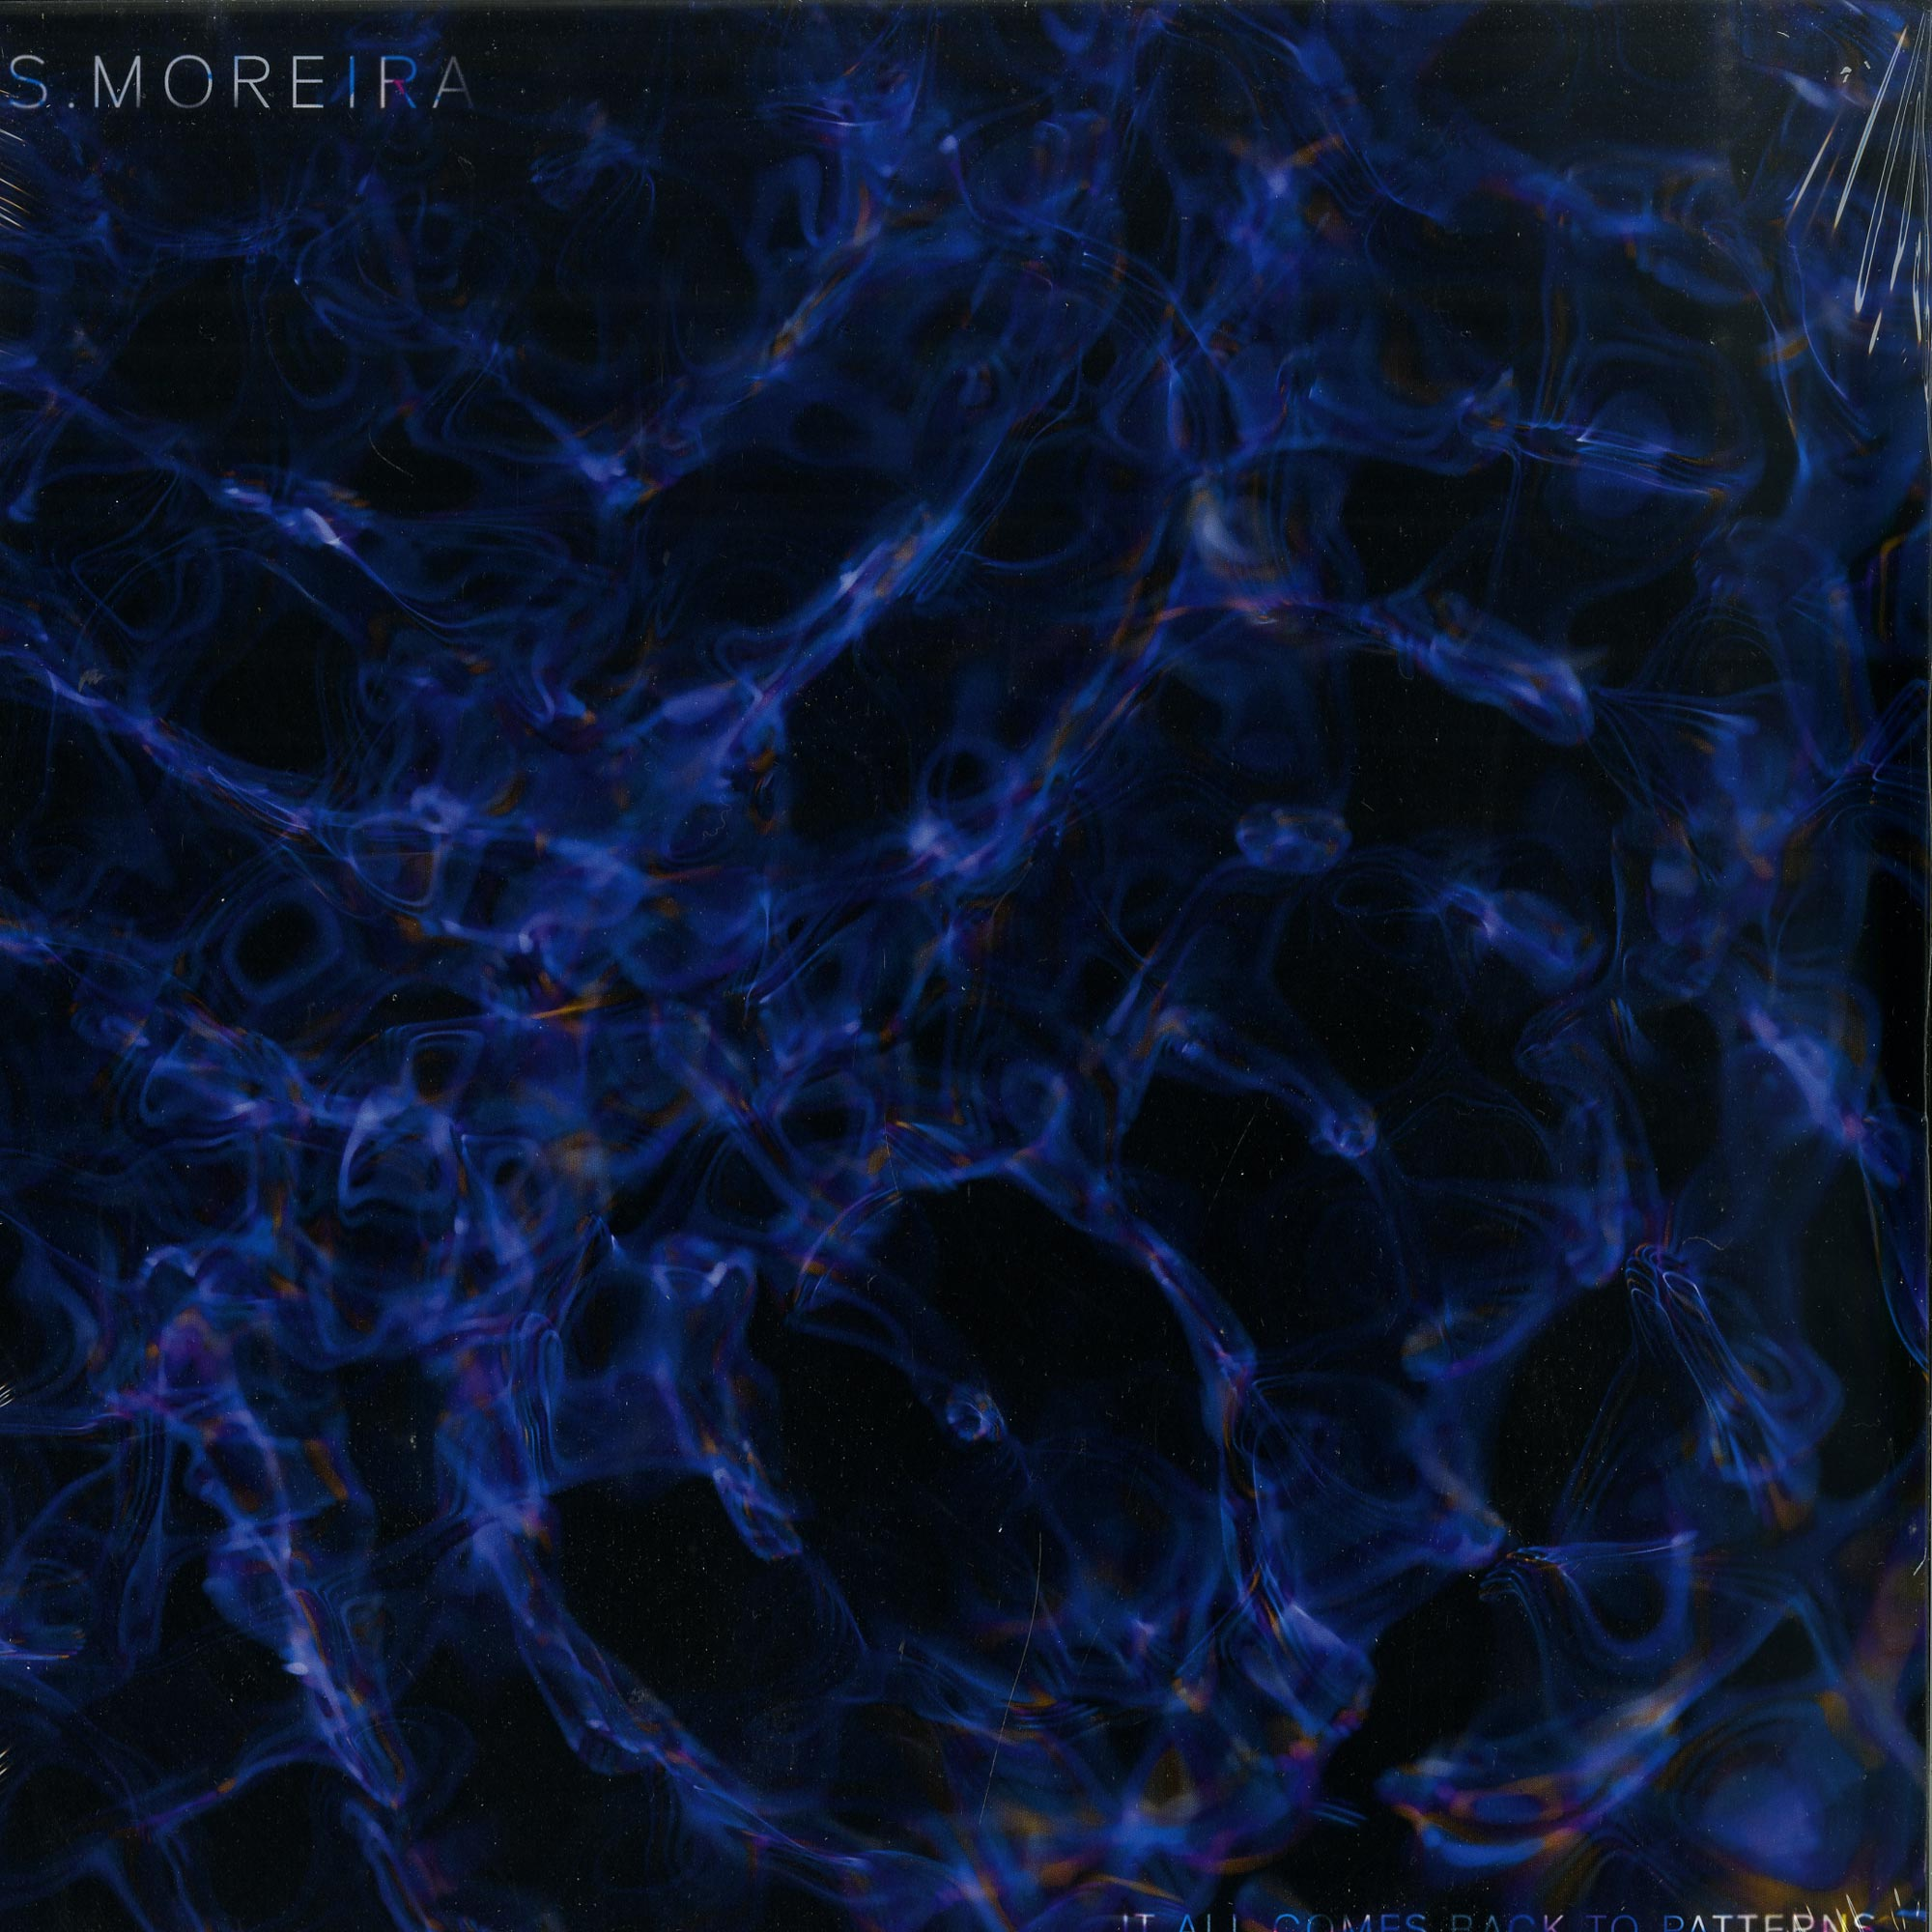 S.Moreira - IT ALL COMES BACK TO PATTERNS